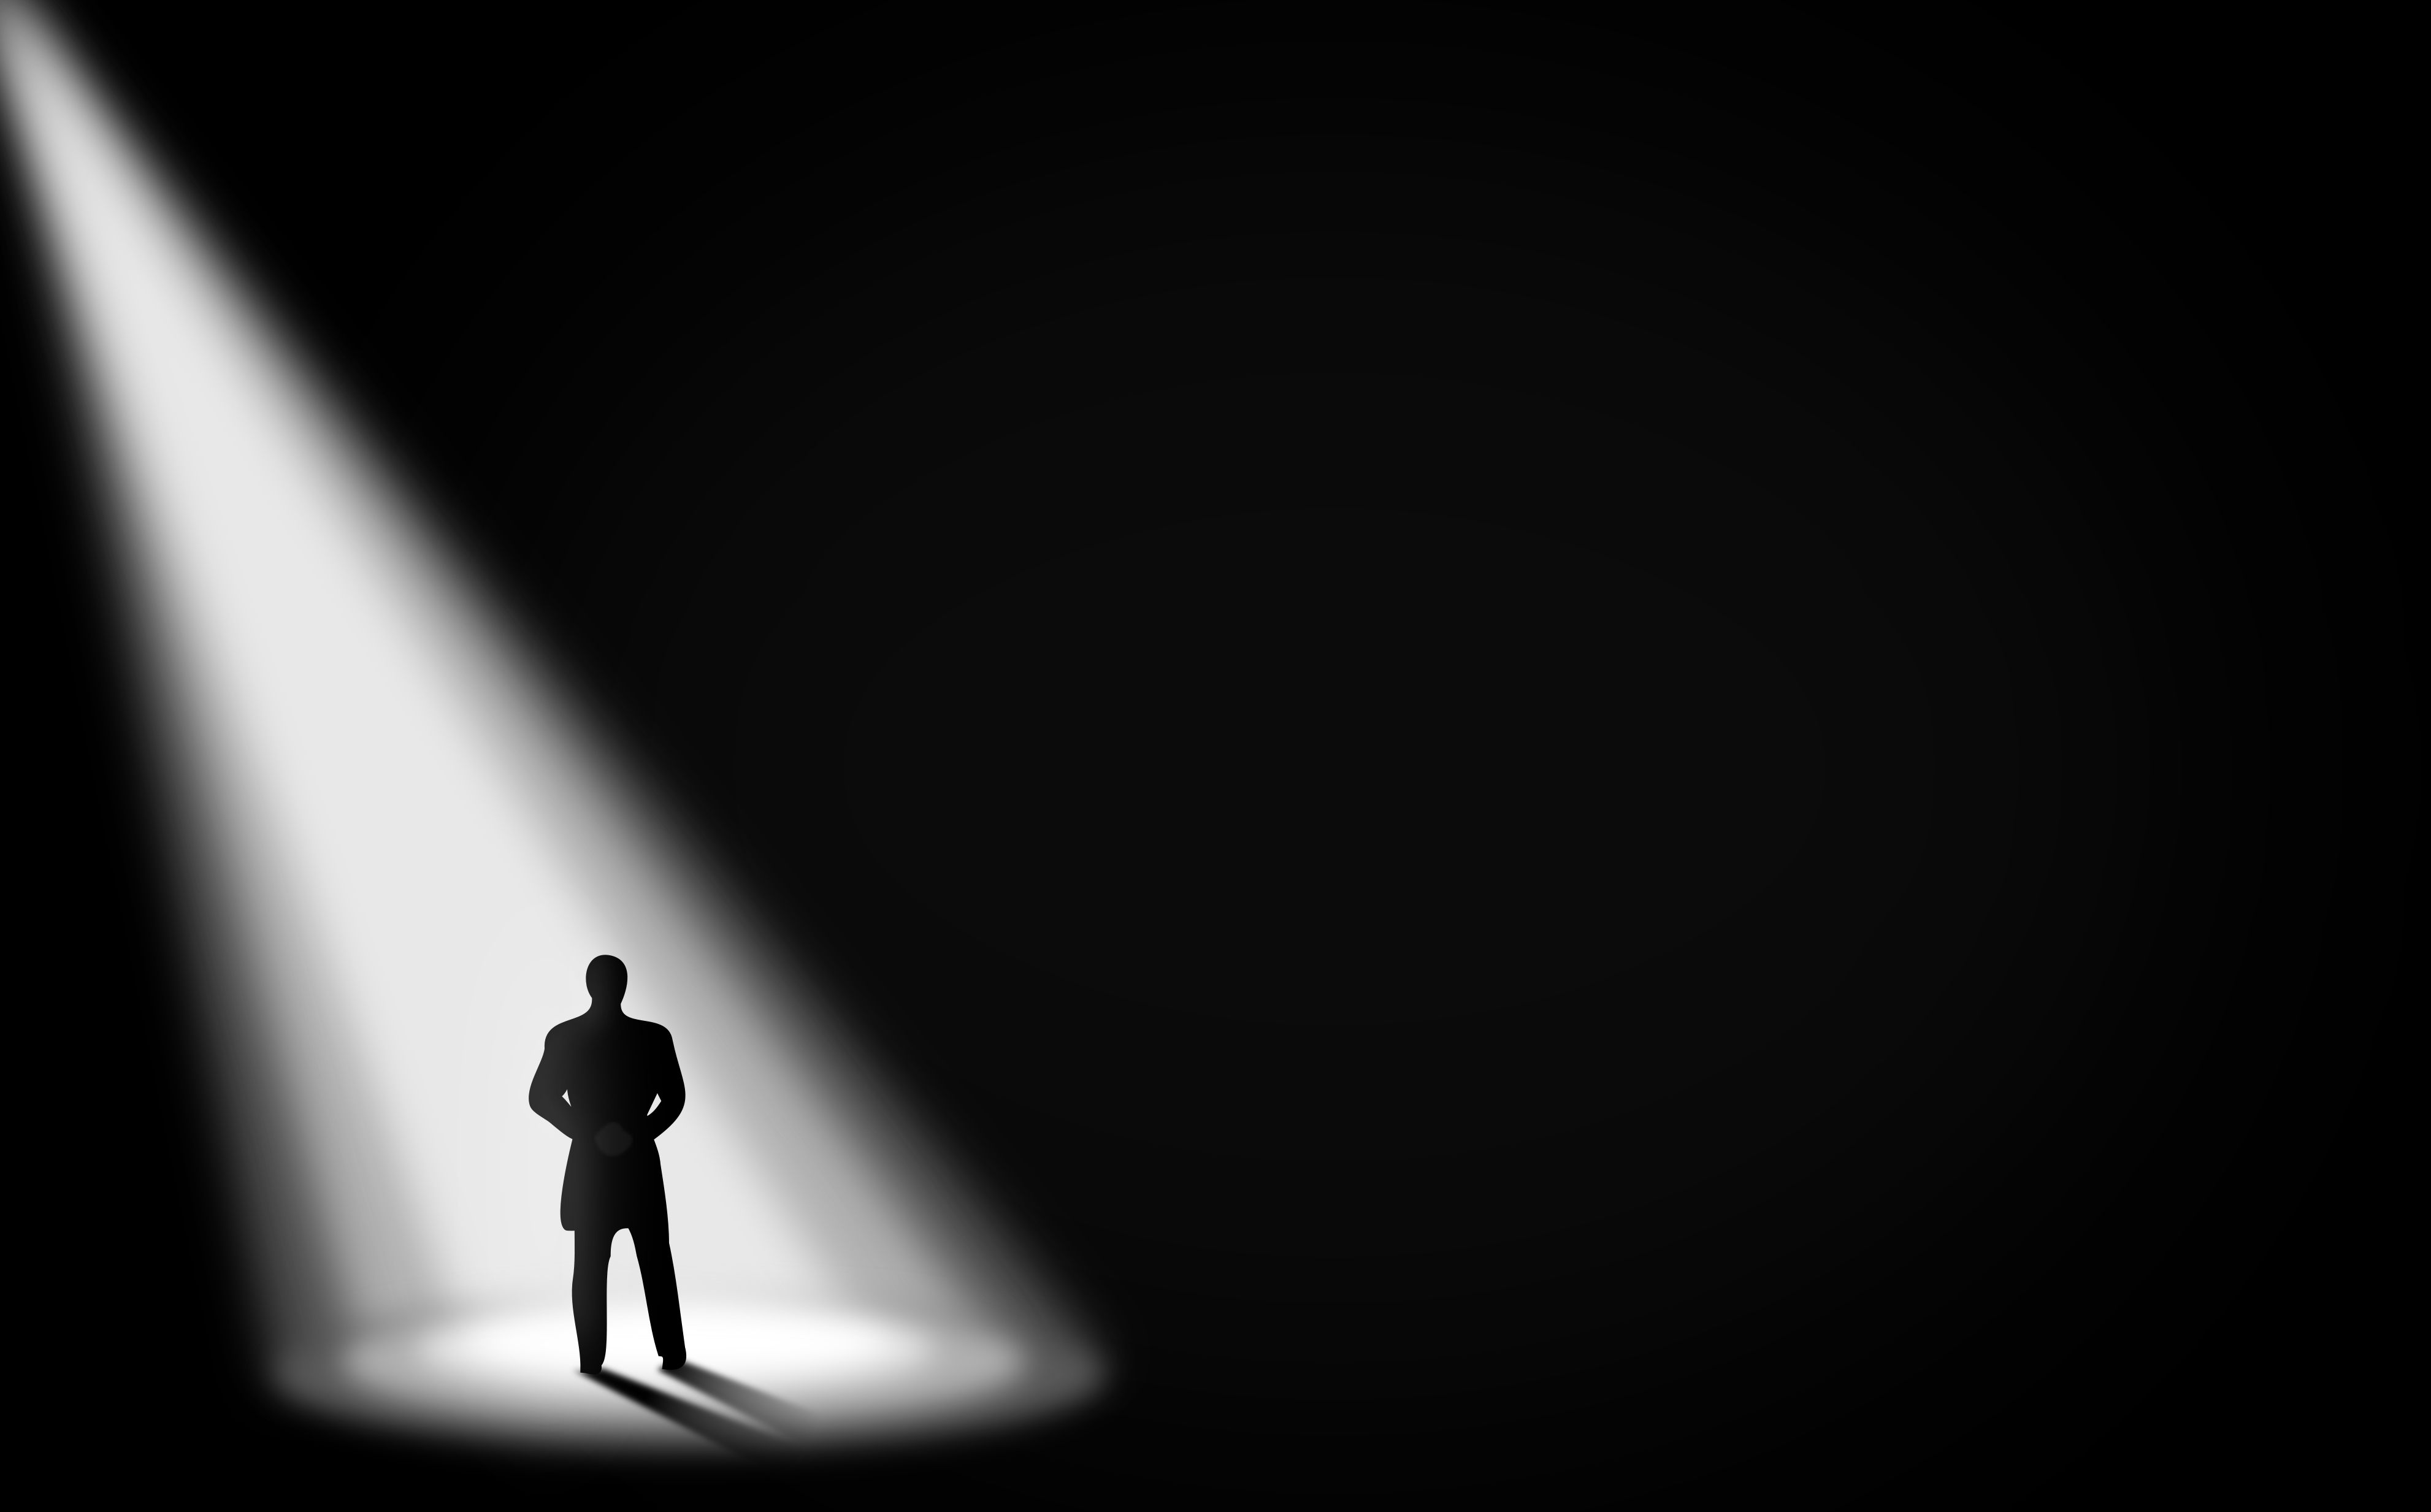 Businessman Alone in the Dark - Under the Spotlight - With Copyspace, Access, Pensive, Passage, Paradise, HQ Photo